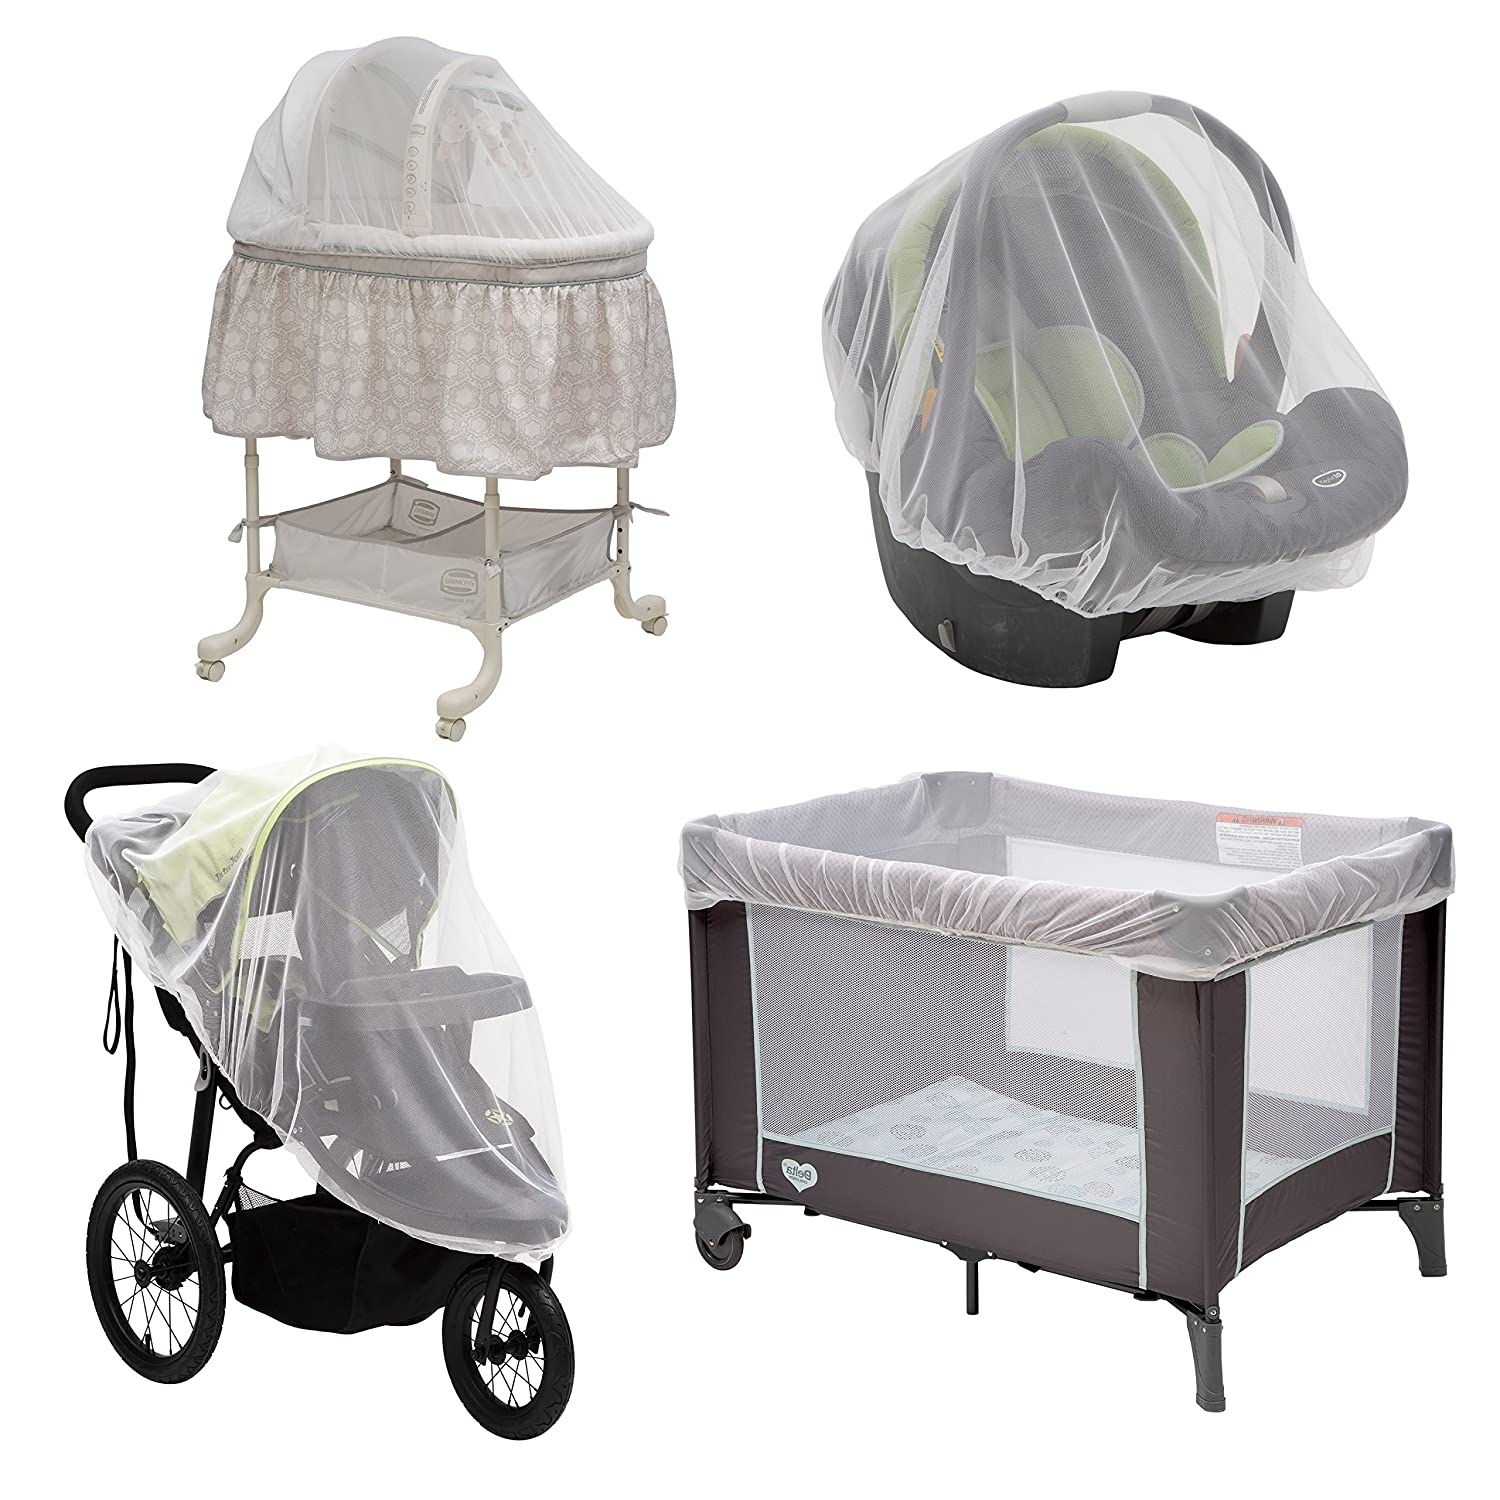 Baby Mosquito and Bug Nets for Strollers & Joggers, Pack n' Plays, Infant Car Seats & Bassinets. 2-Pack. Breathable with Elastic for Easy fit